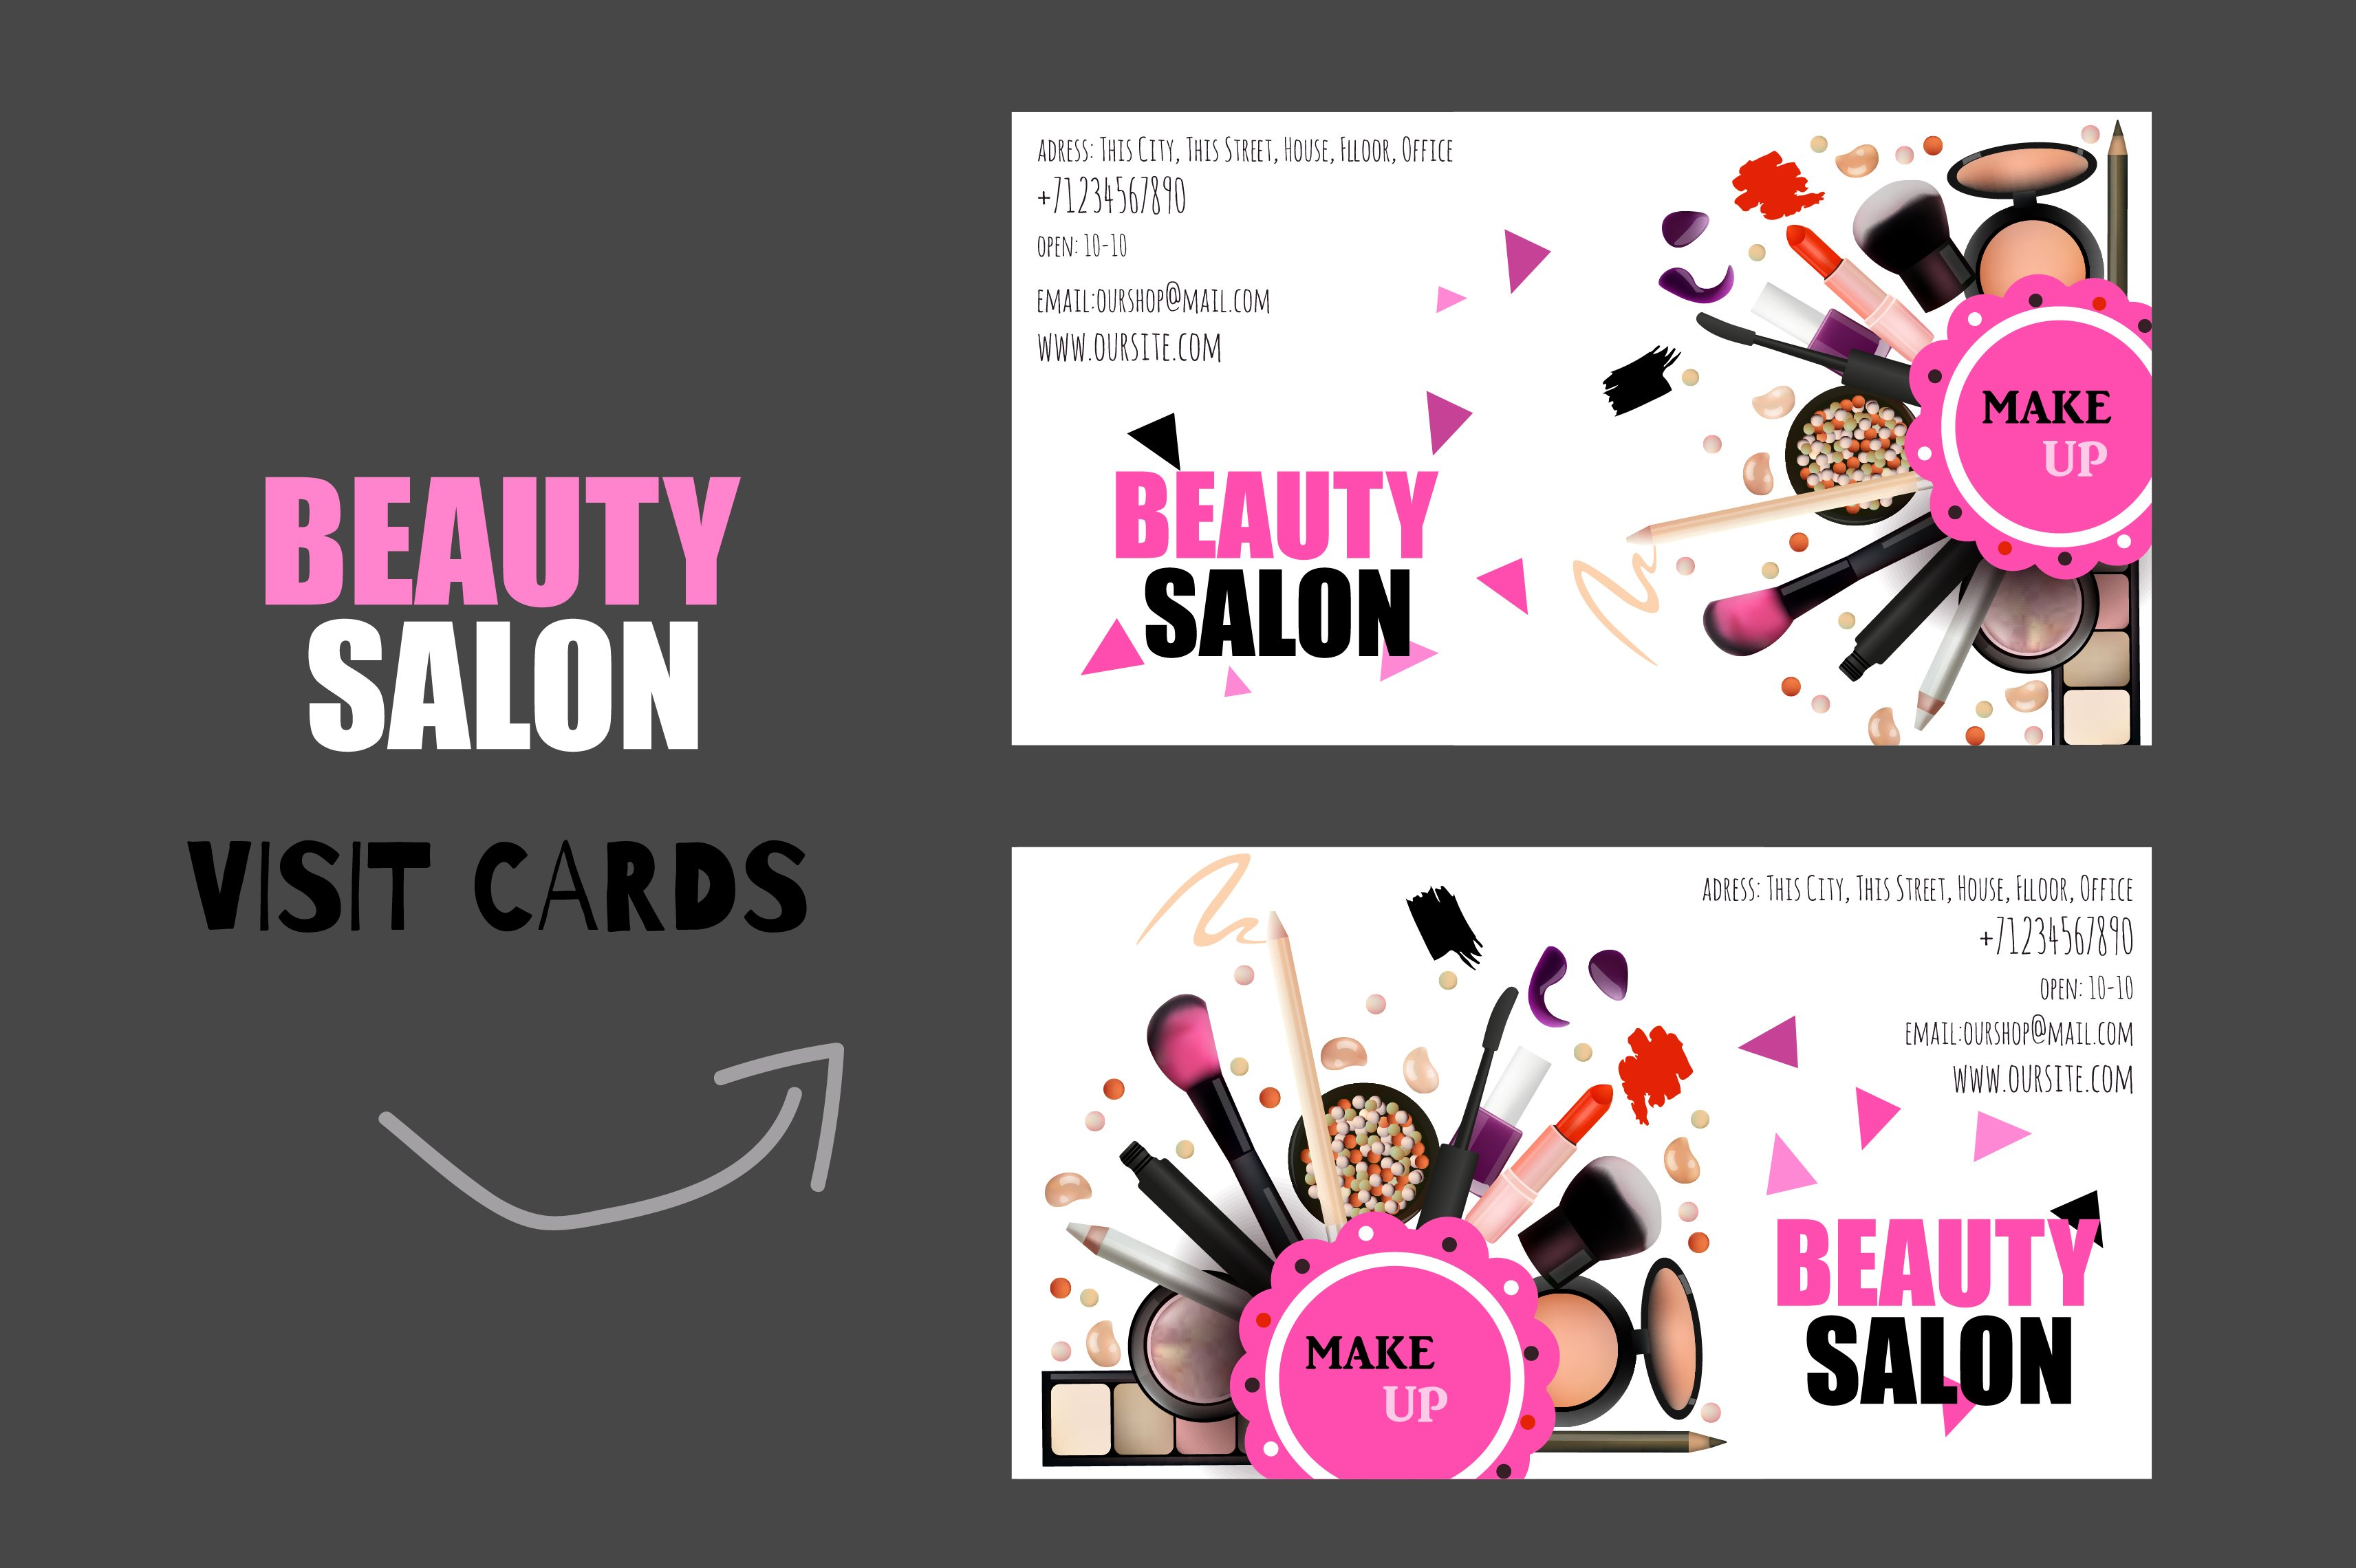 Beauty salon card business card templates creative market - Beauty salon business ...